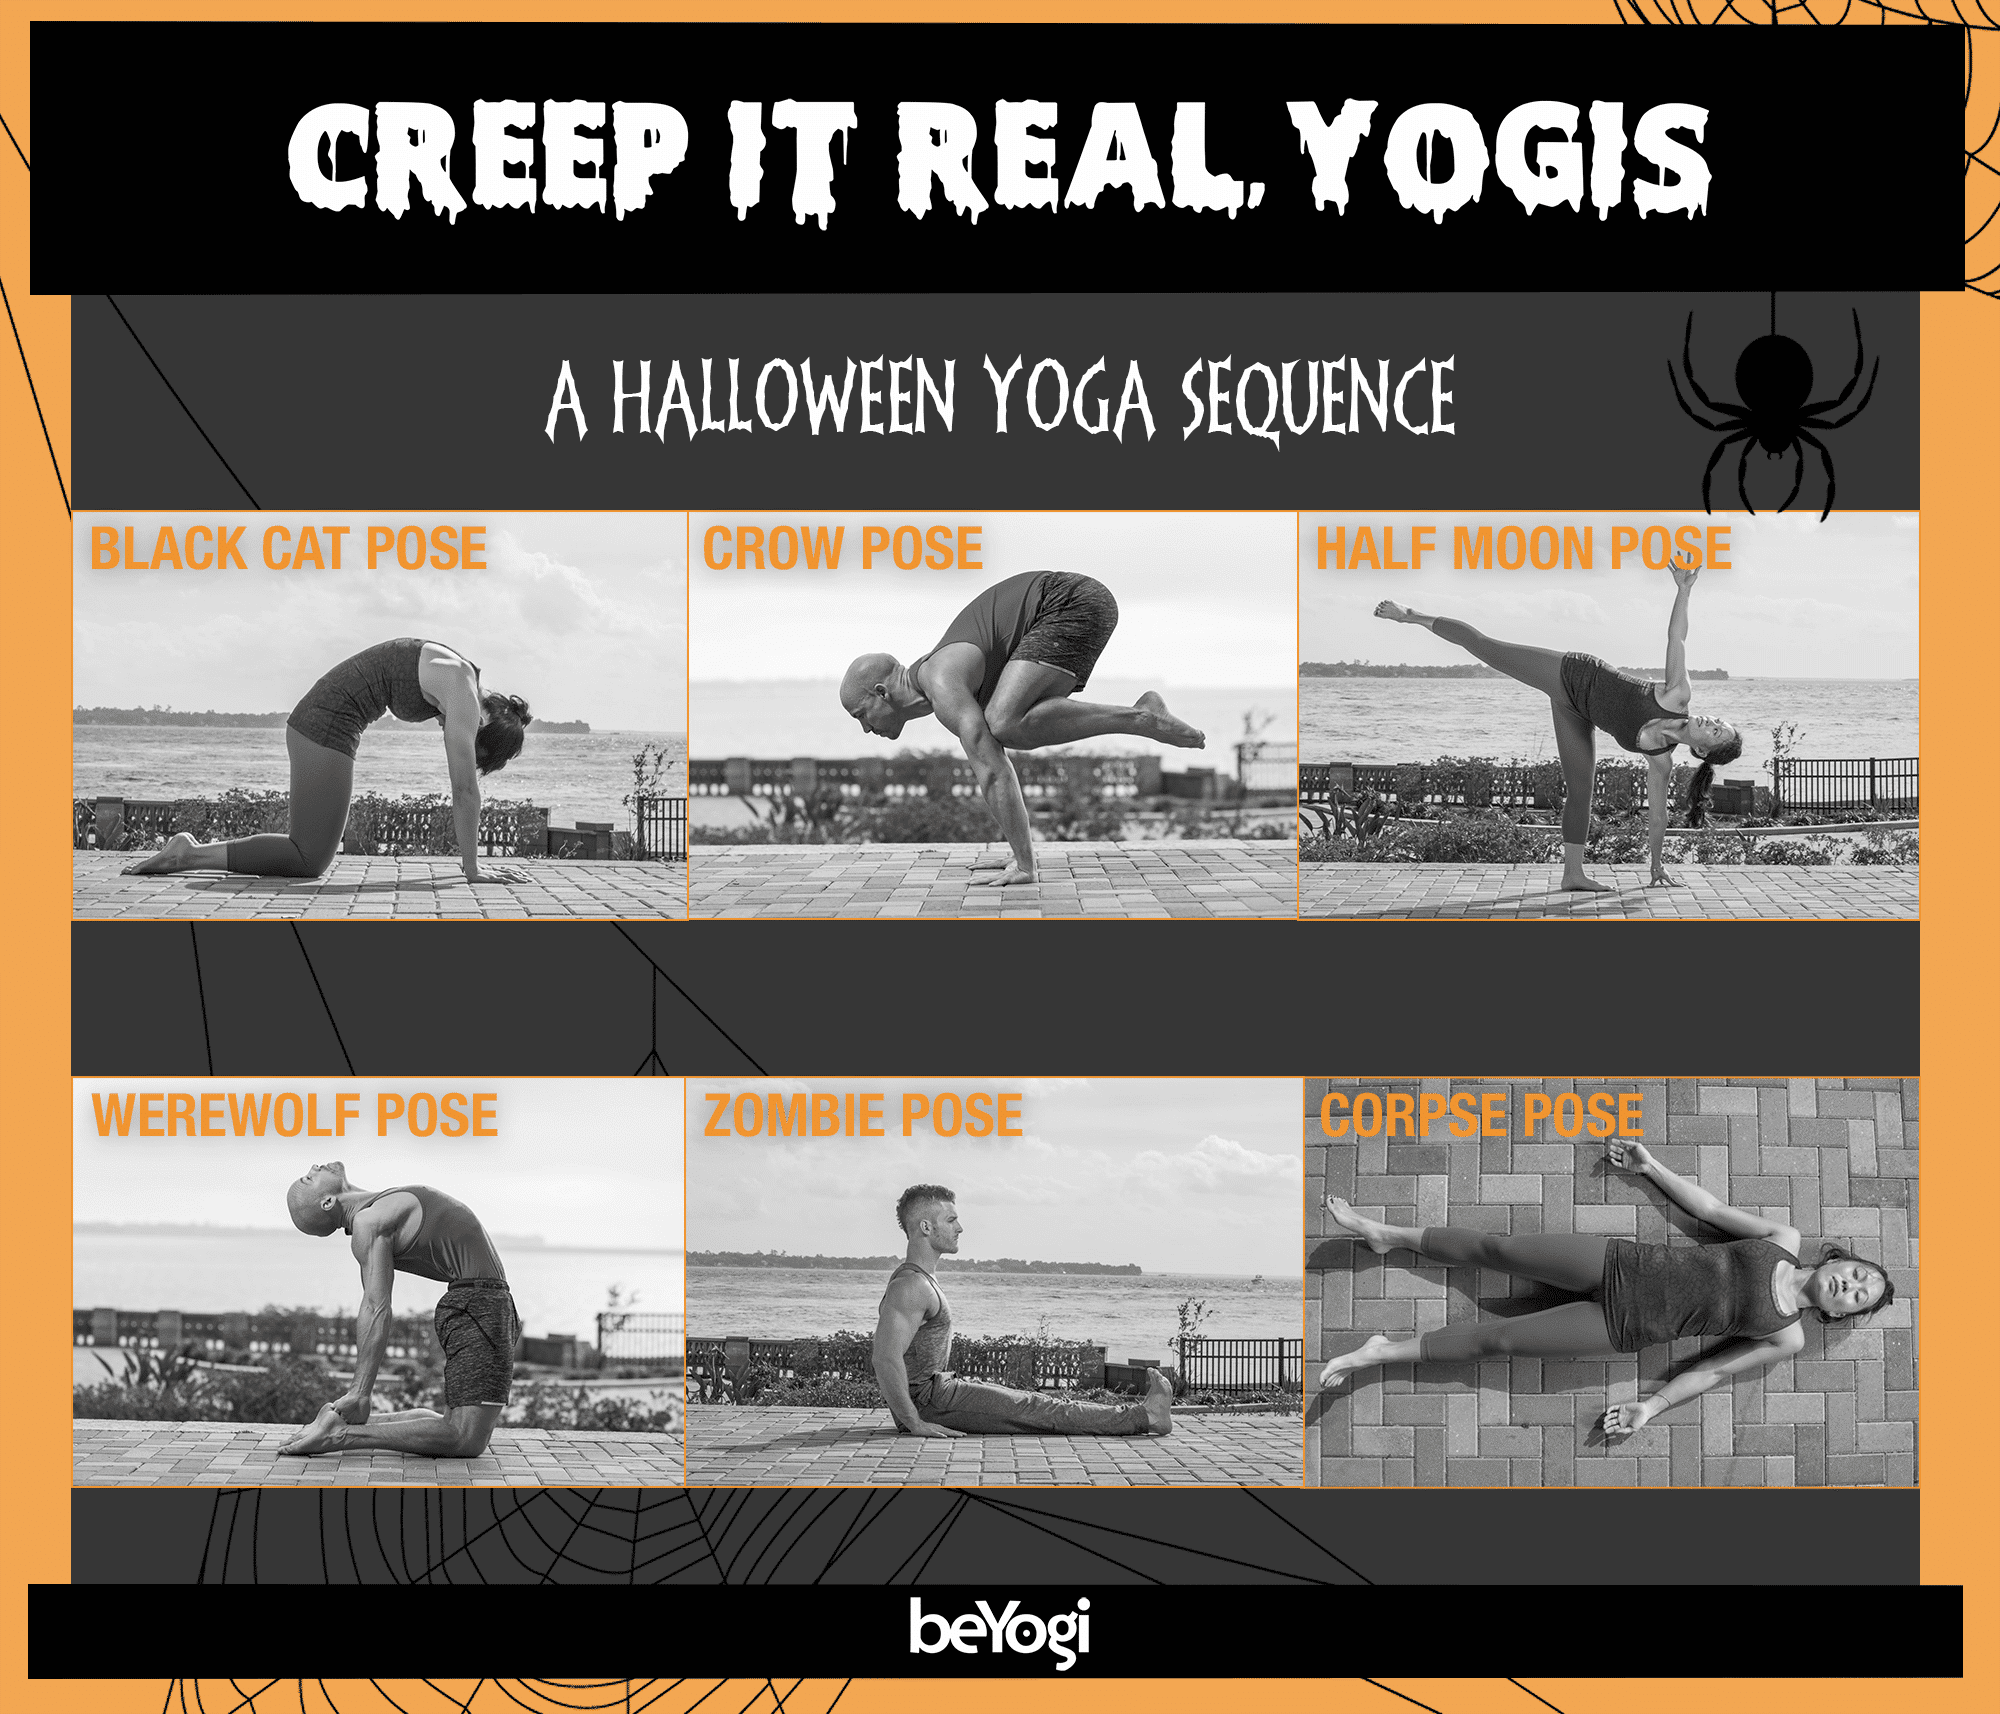 a halloween yoga sequence so good its scary beyogi - Halloween Sequences